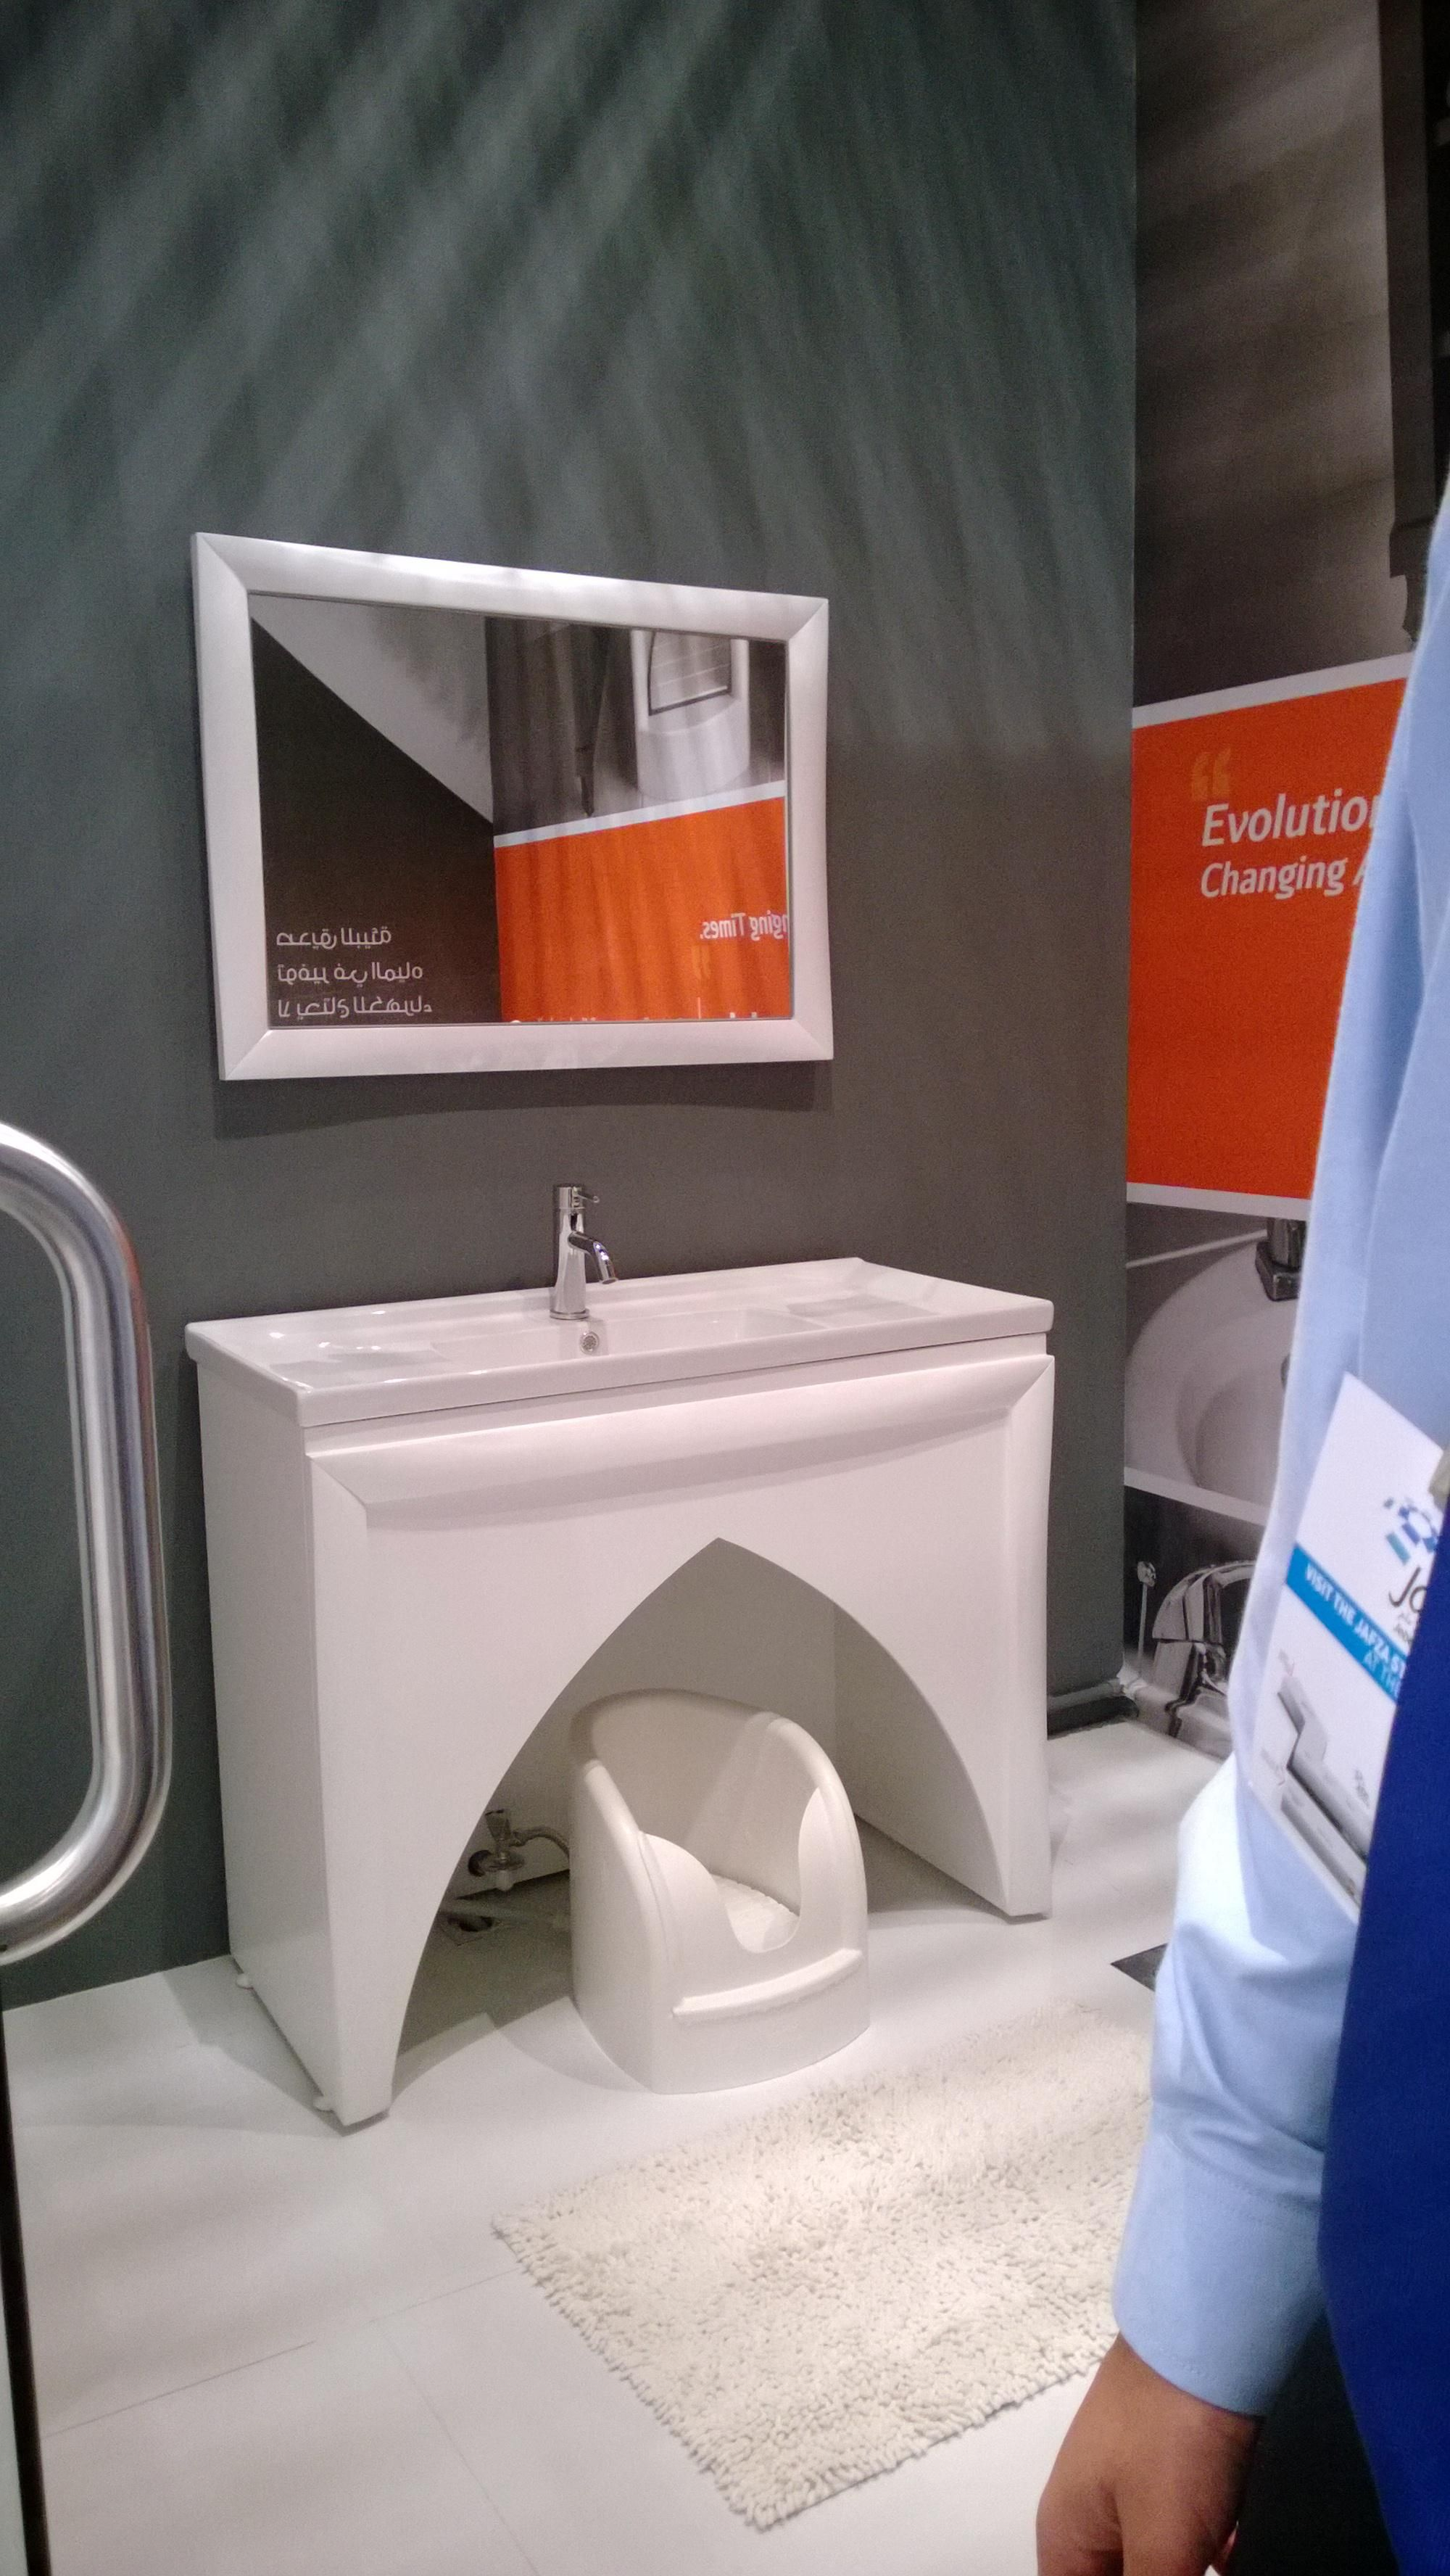 Wudu Foot Washer And Cabinet At The Big 5 Event Dubai